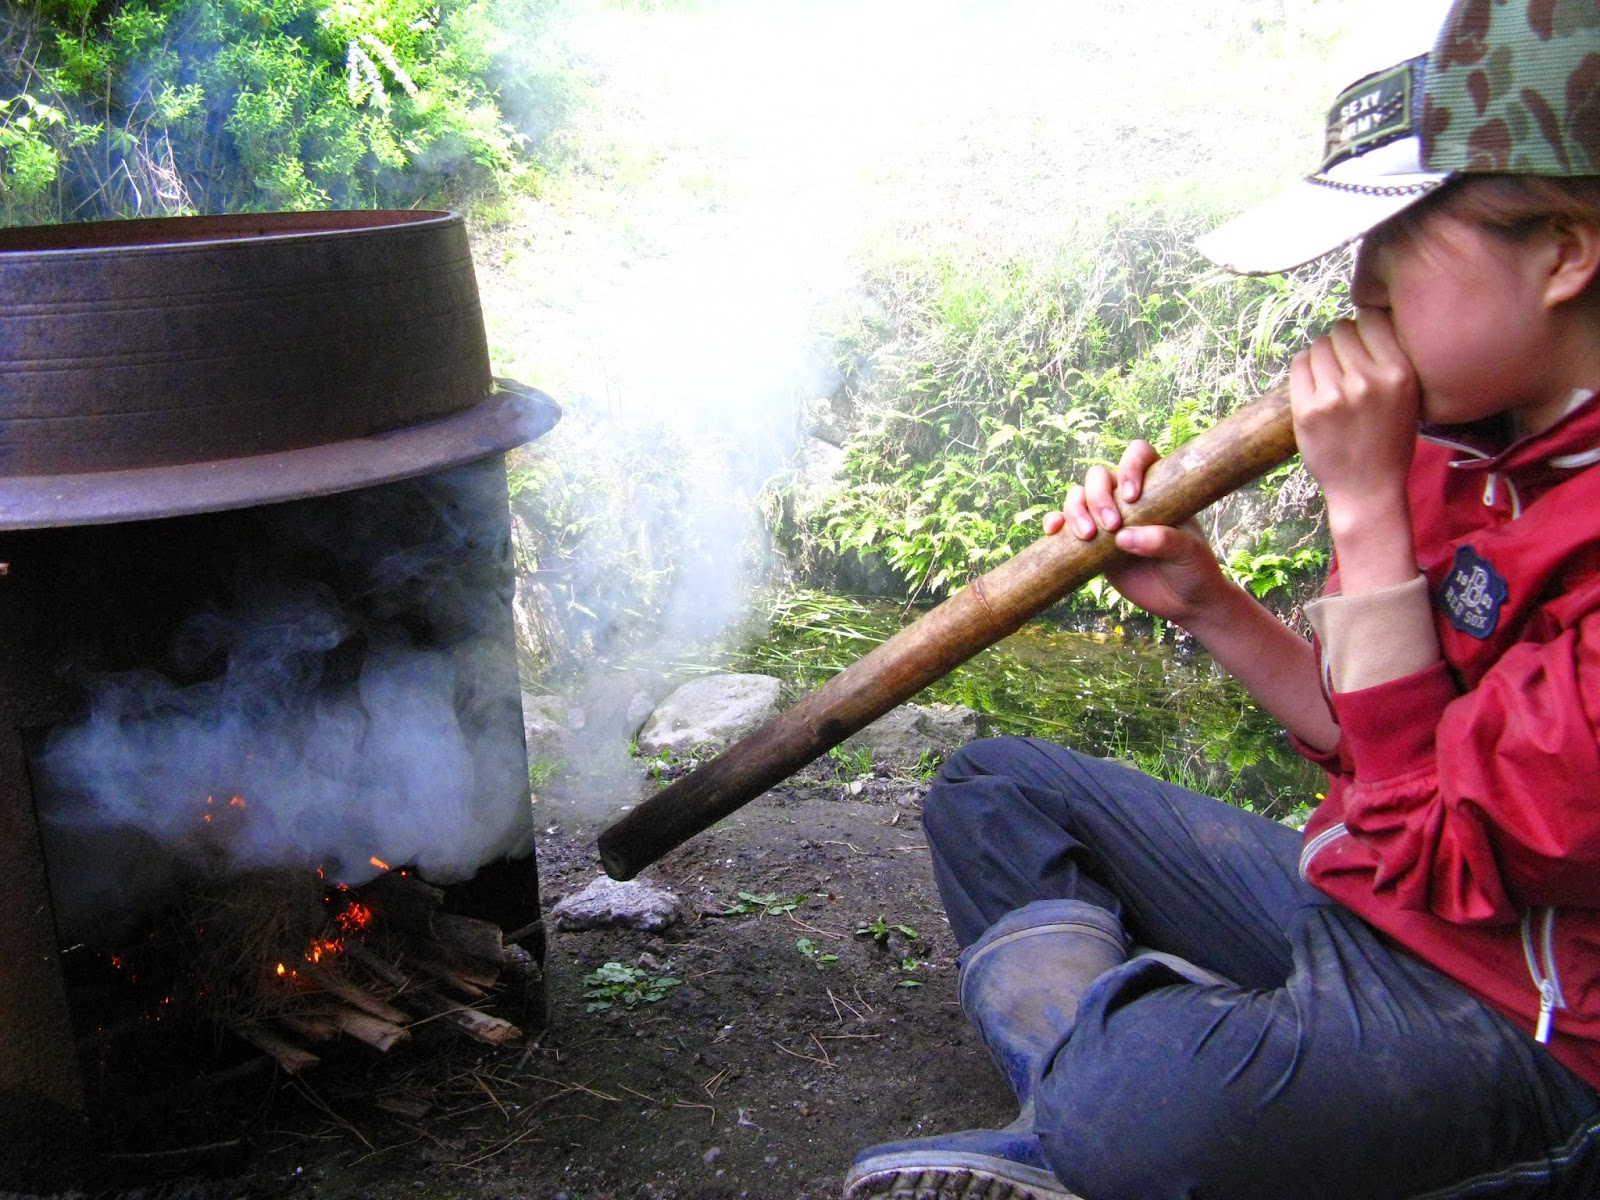 WWOOF Japan preparing bamboo shoots to eat